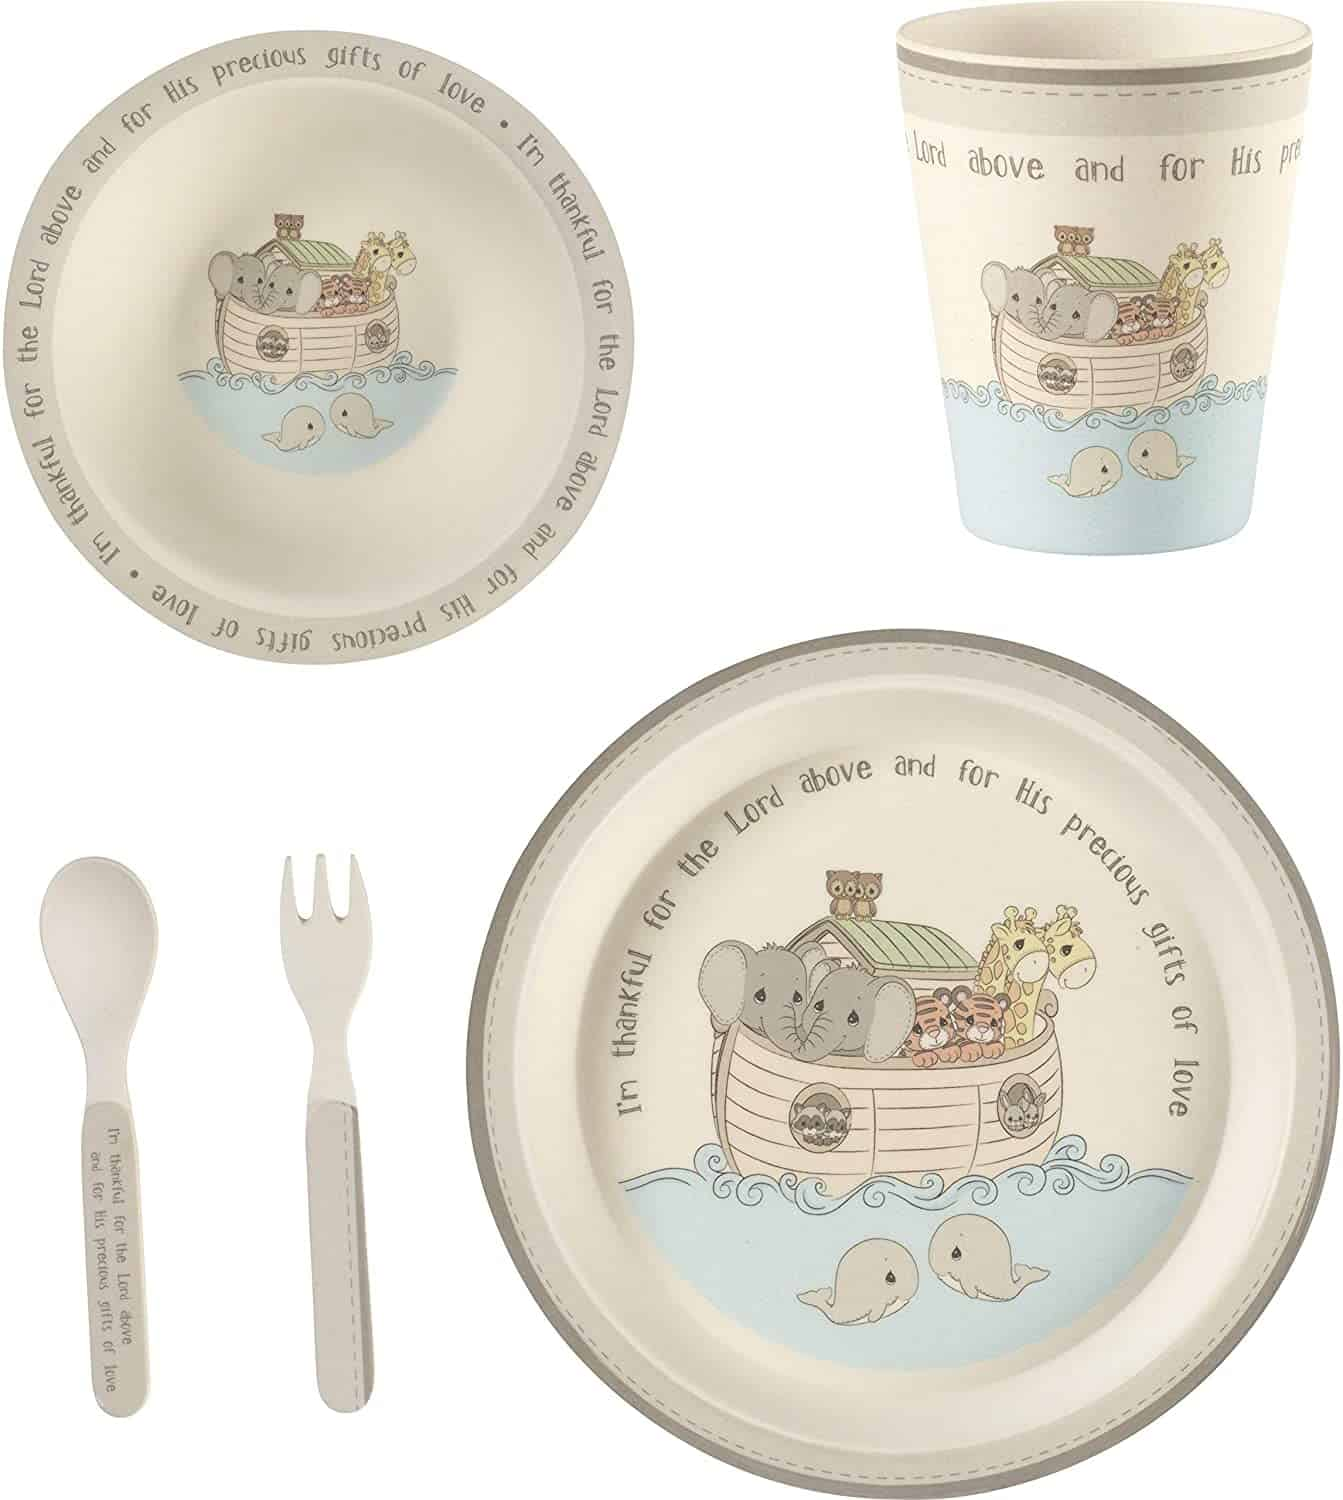 Noah's Ark Dinnerware Set with bowls, glass, spoon and fork